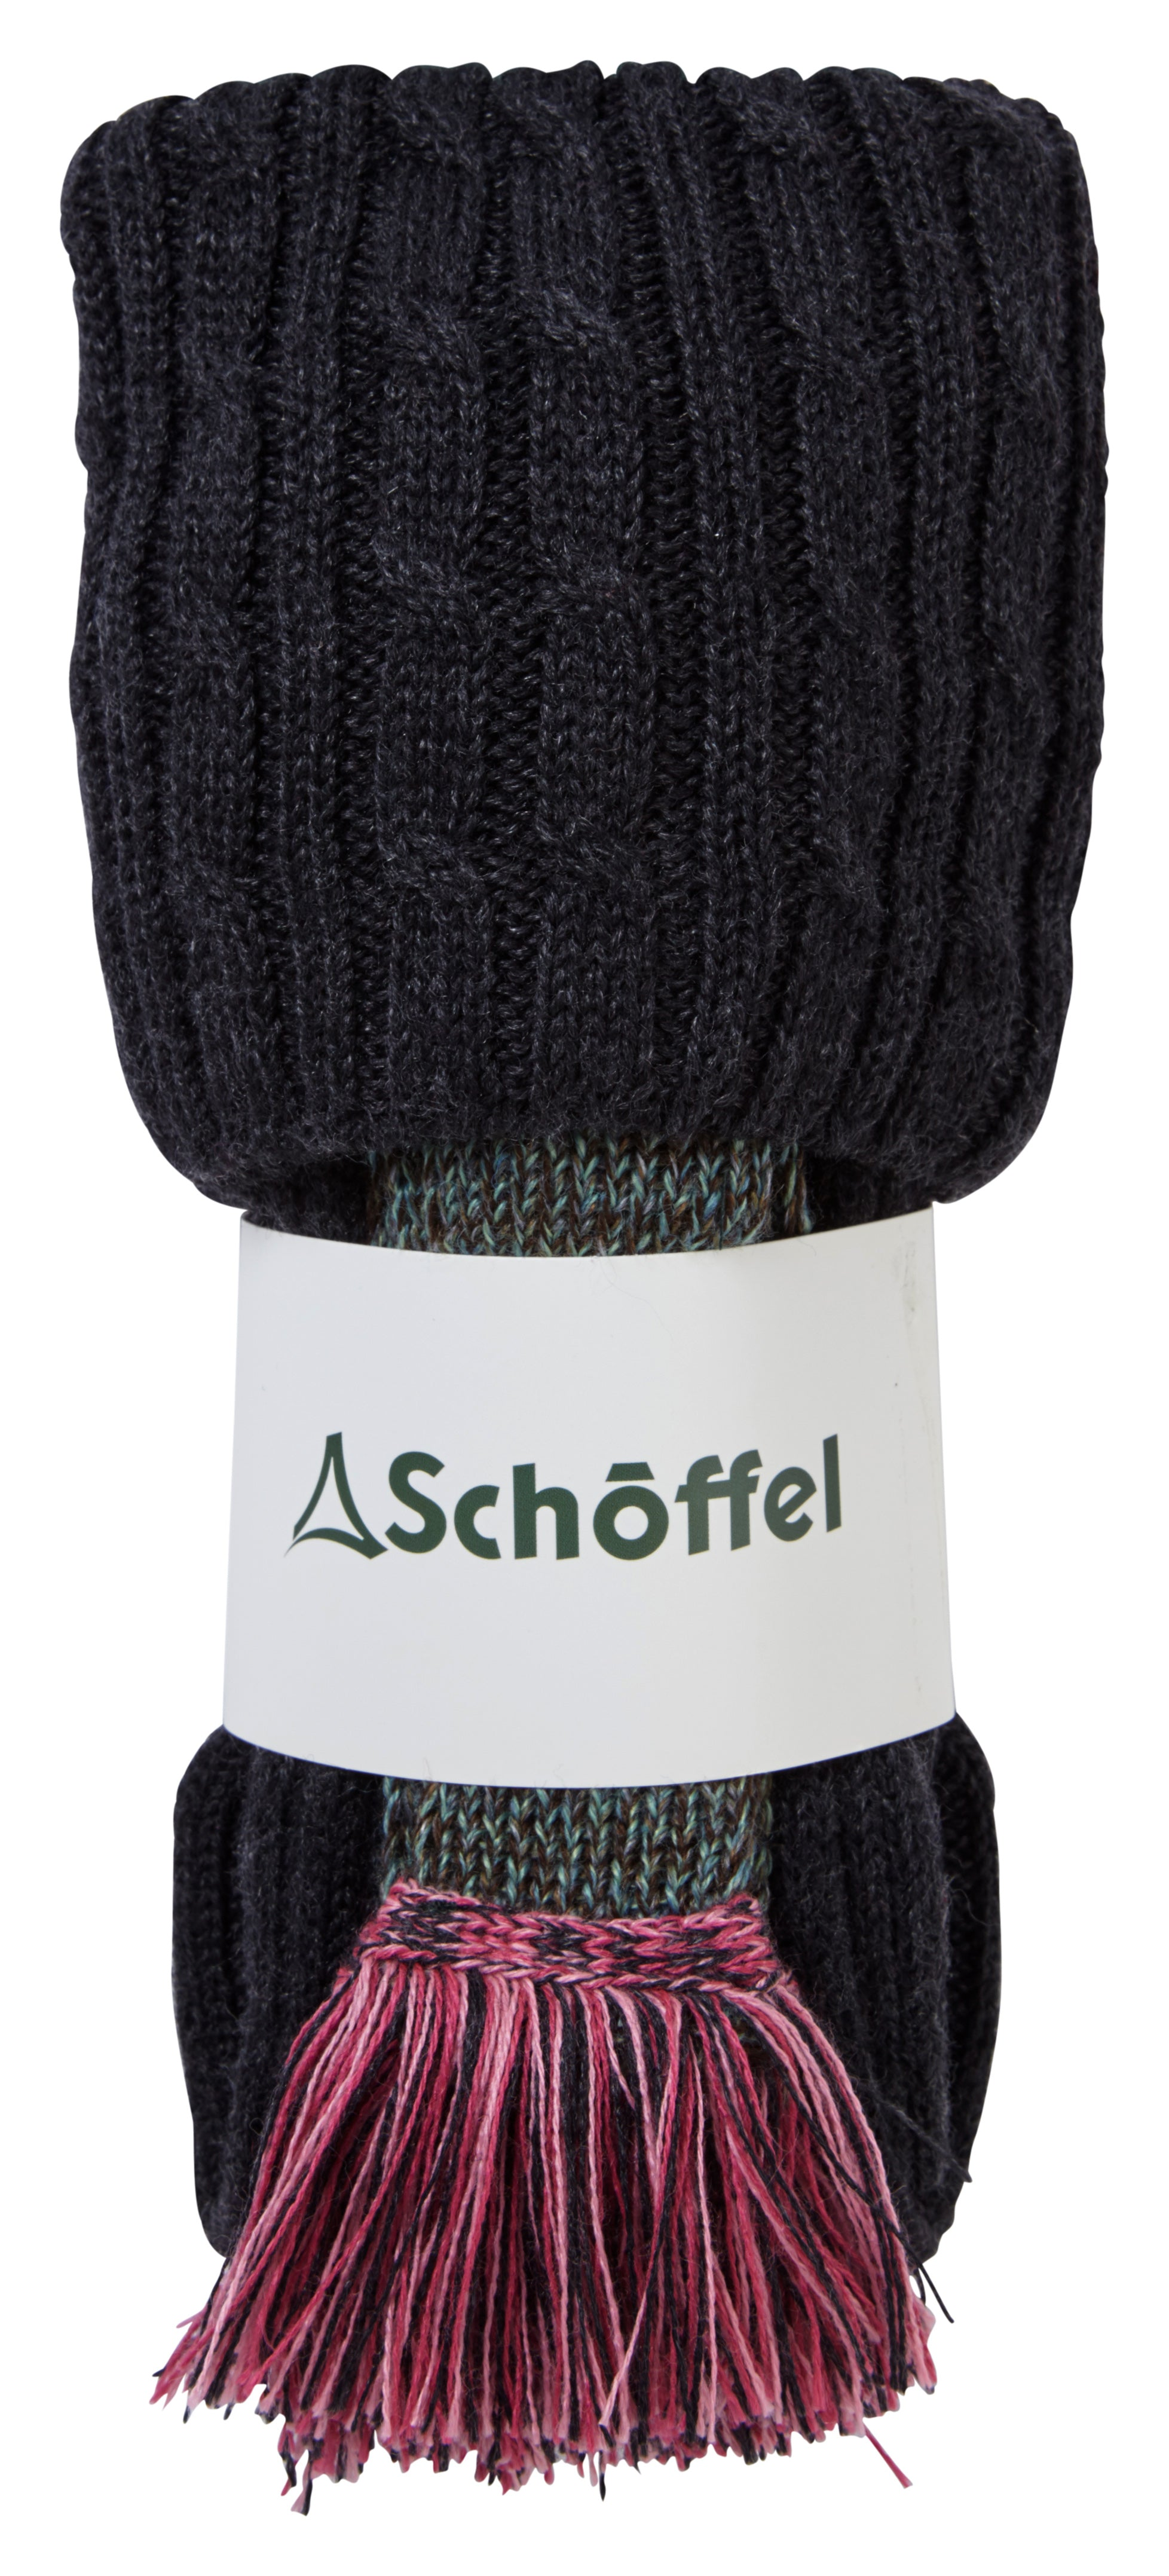 Schoffel Lilymere Sock for Ladies in Flannel